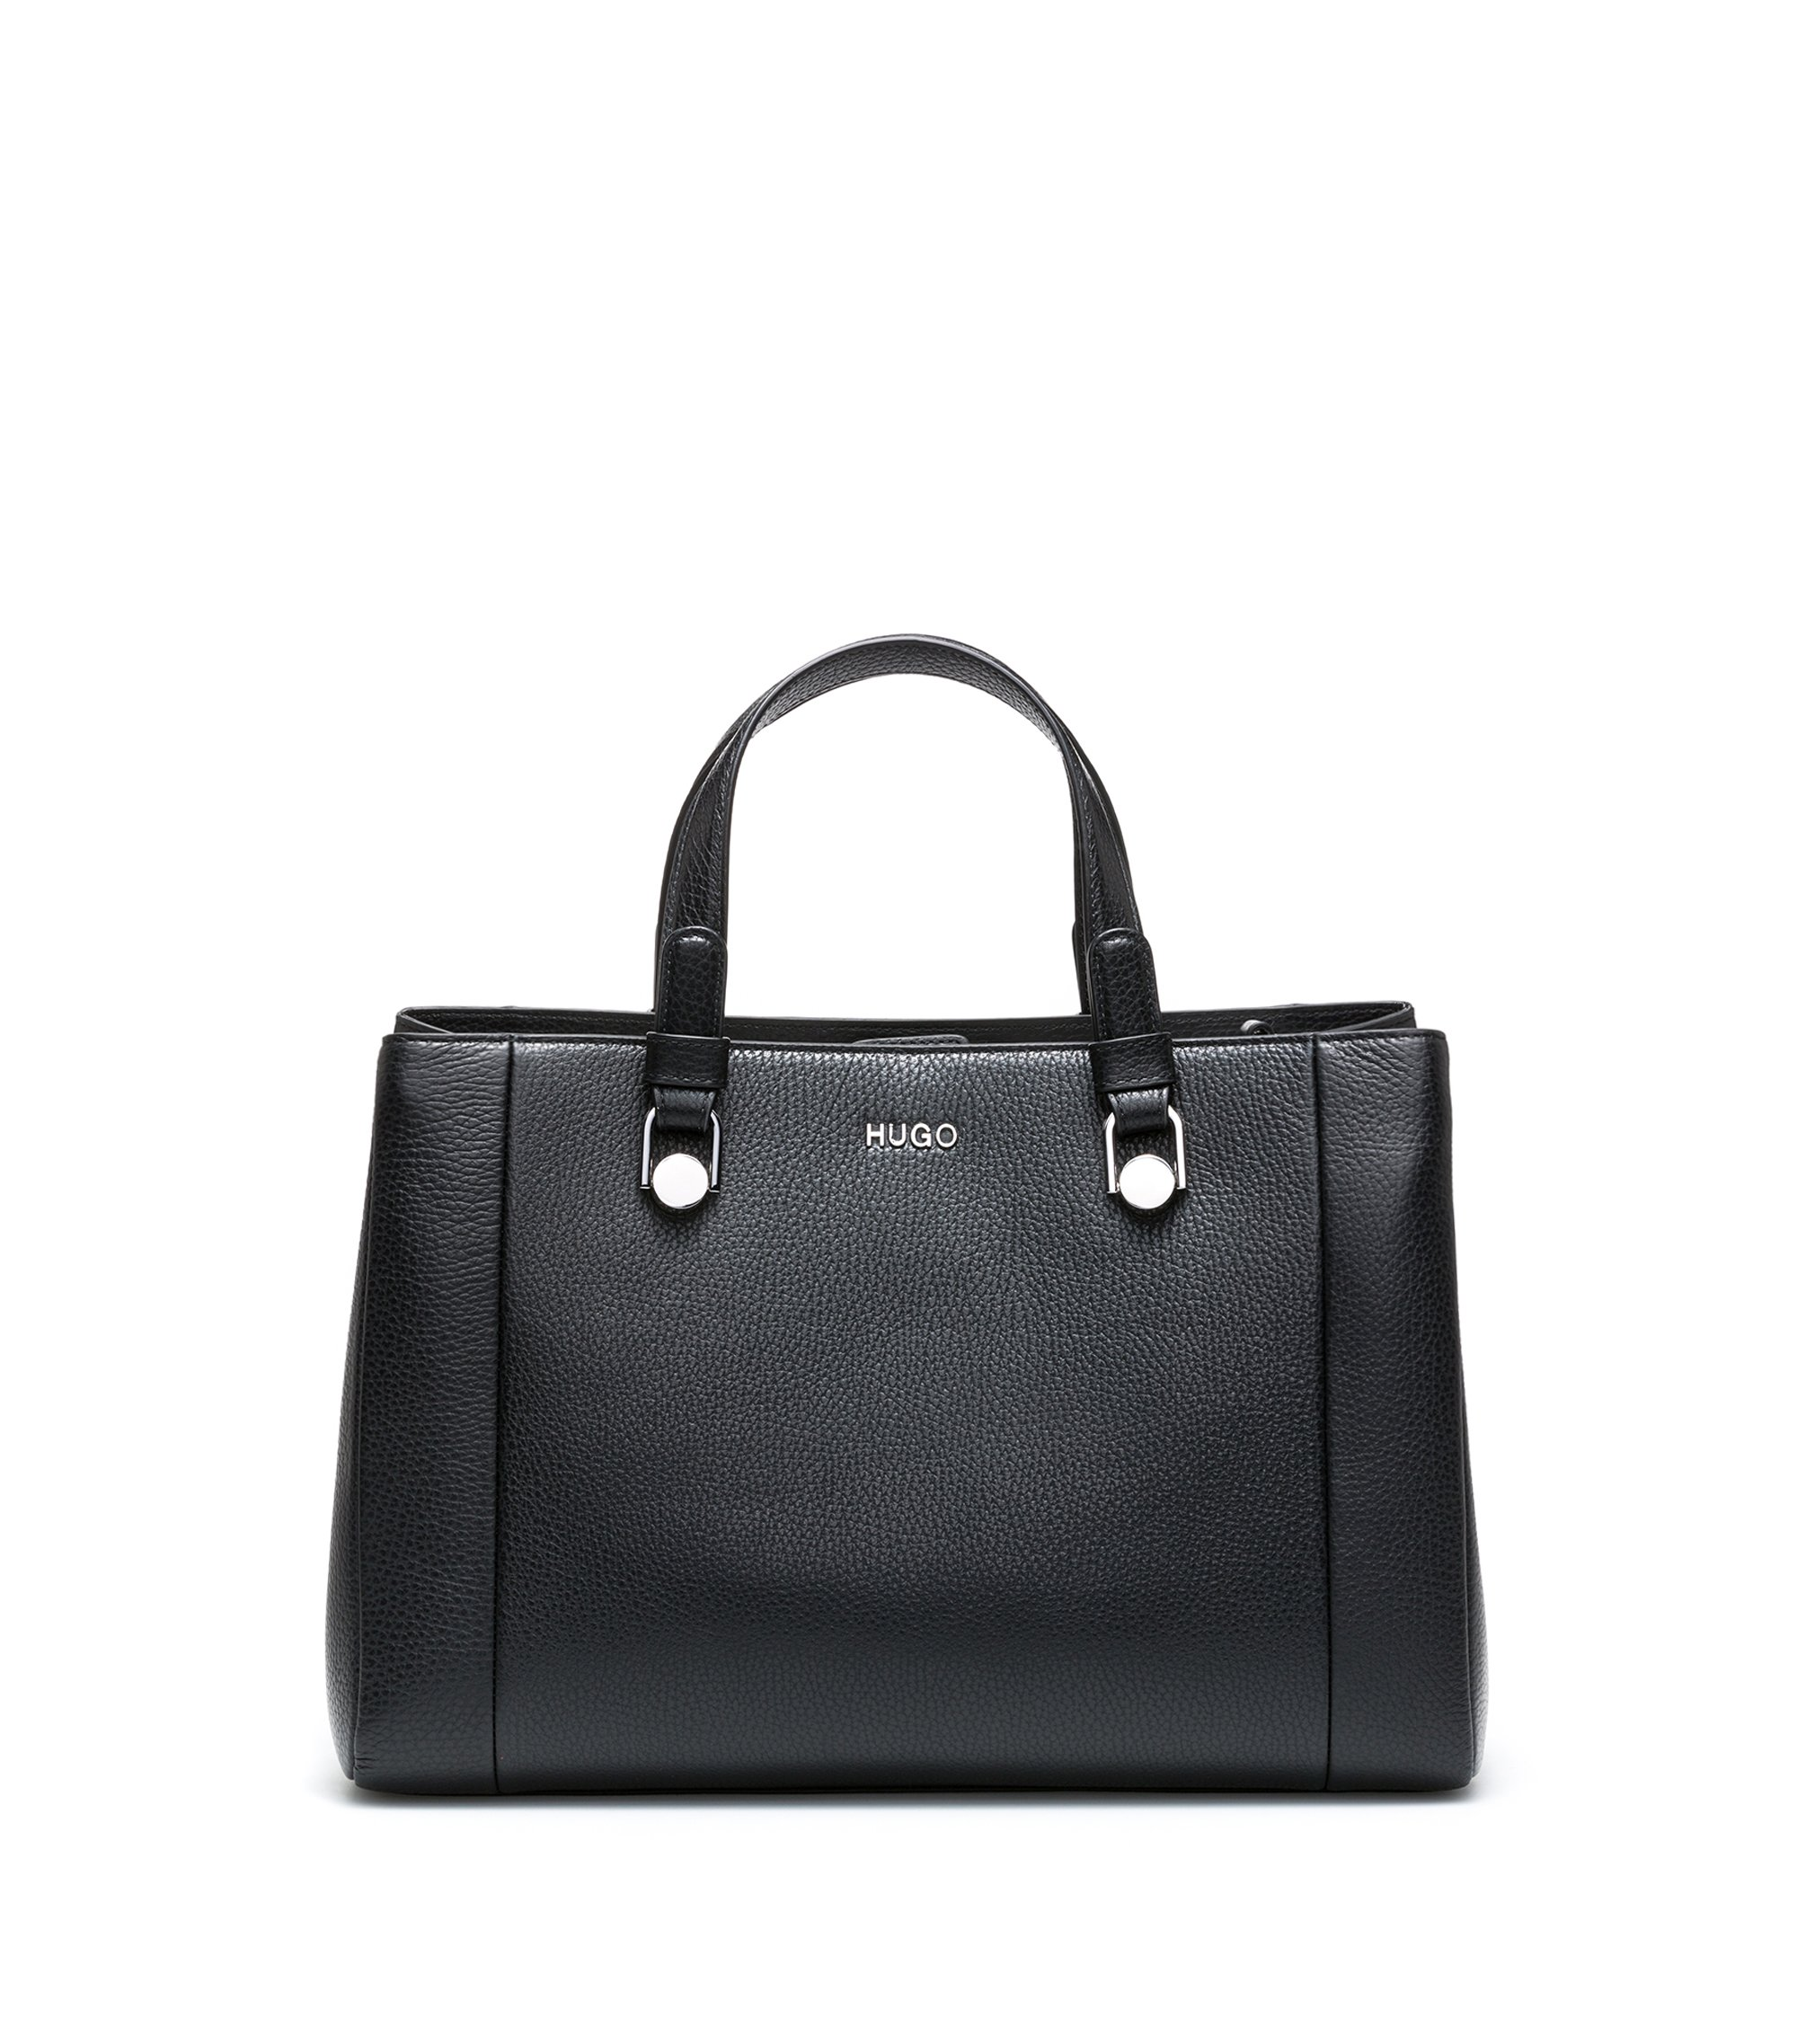 Tote handbag in grained Italian leather, Black